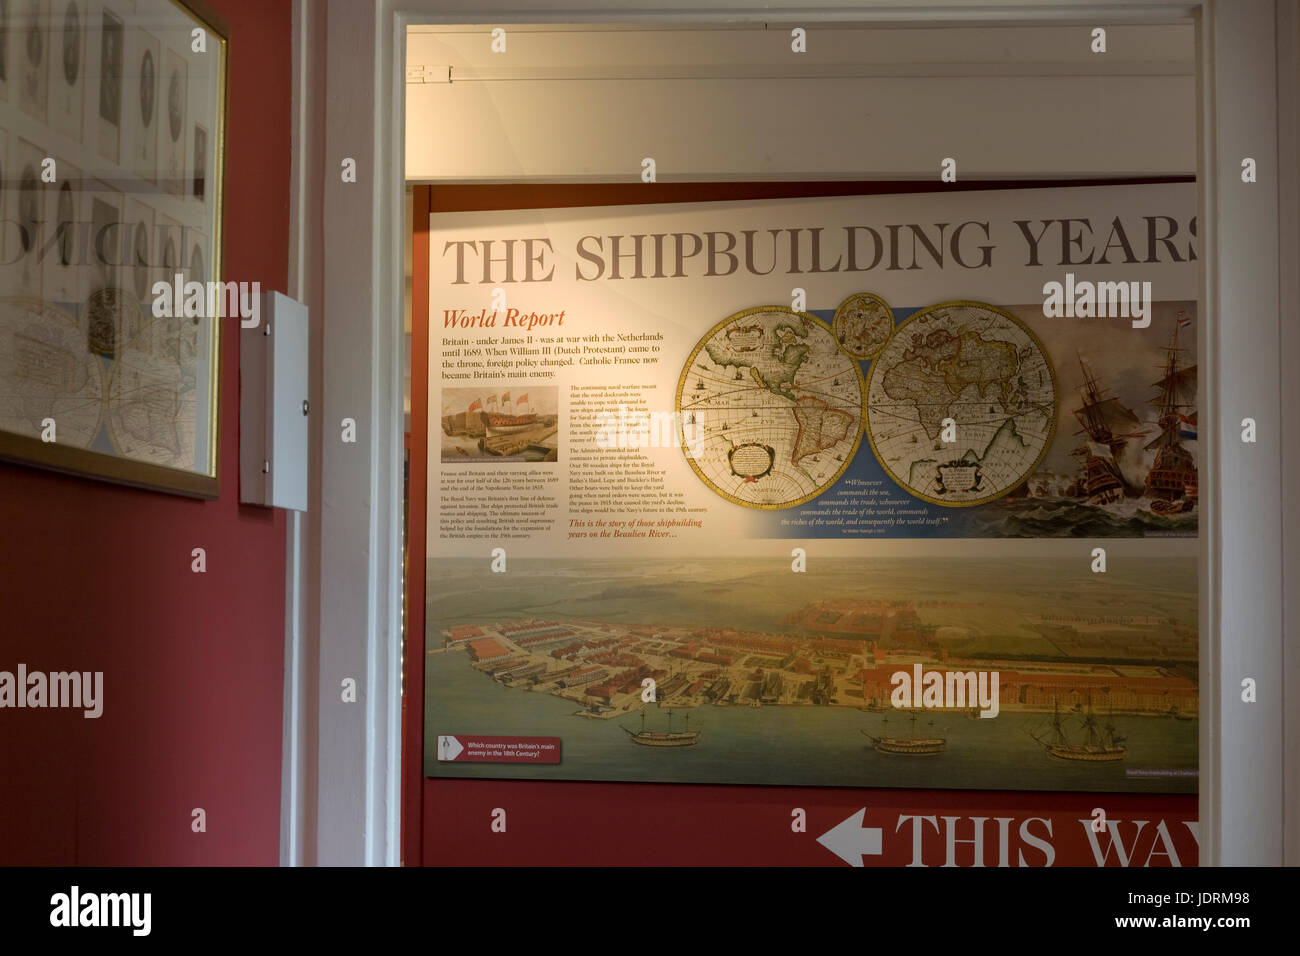 Explanation of the Shipbuilding years in the museum at Buckler's Hard - Stock Image